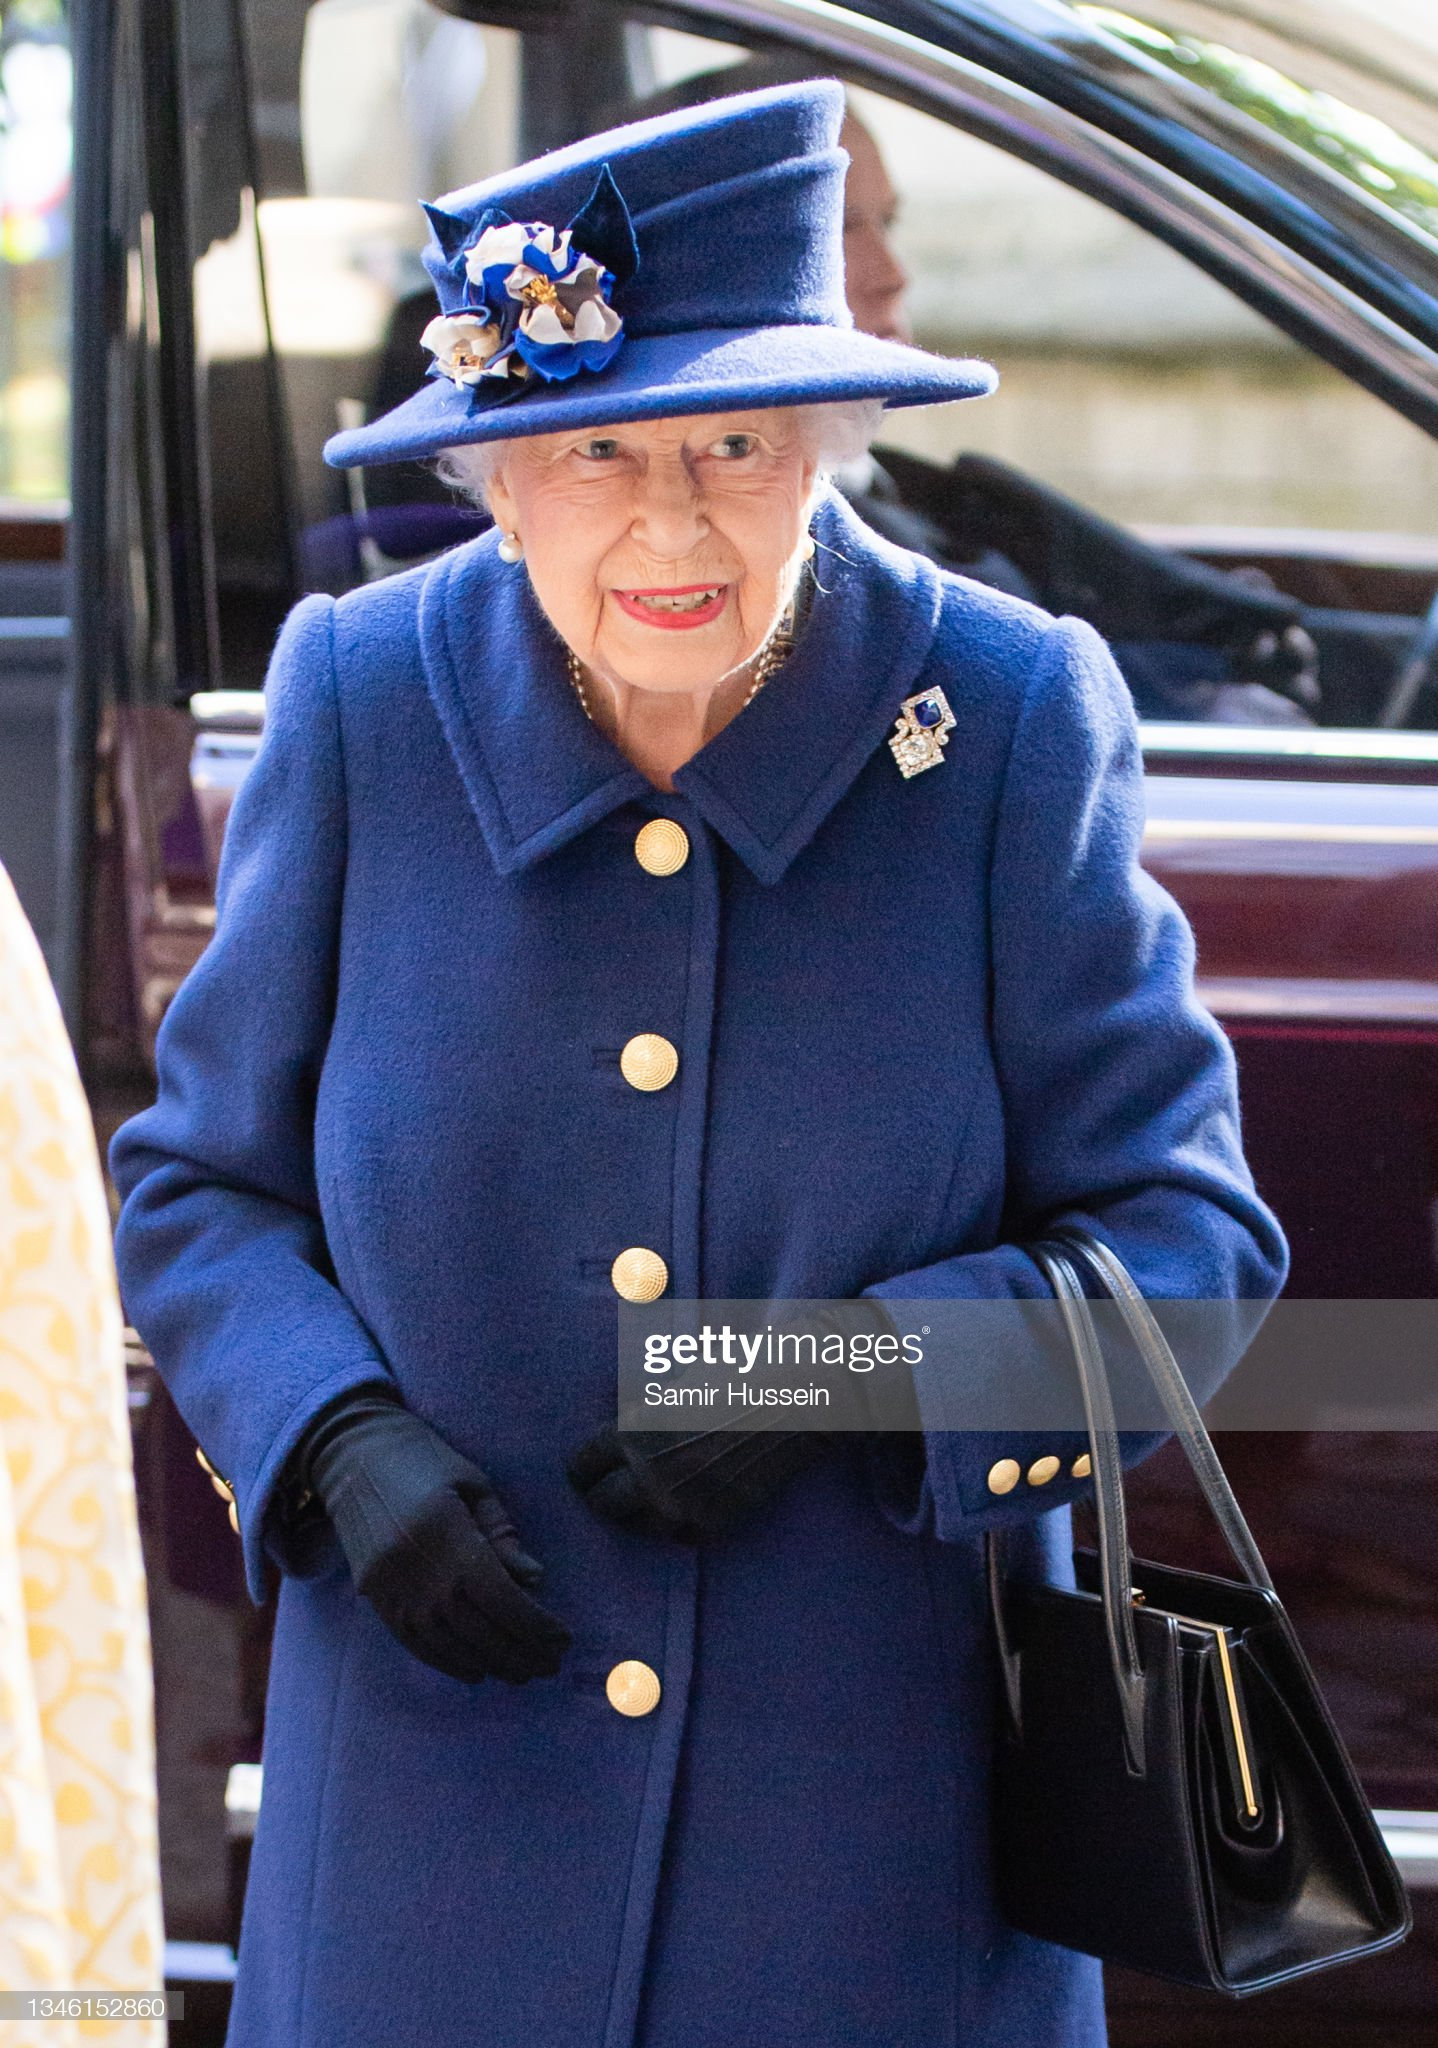 queen-elizabeth-ii-attends-a-service-of-thanksgiving-to-mark-the-of-picture-id1346152860